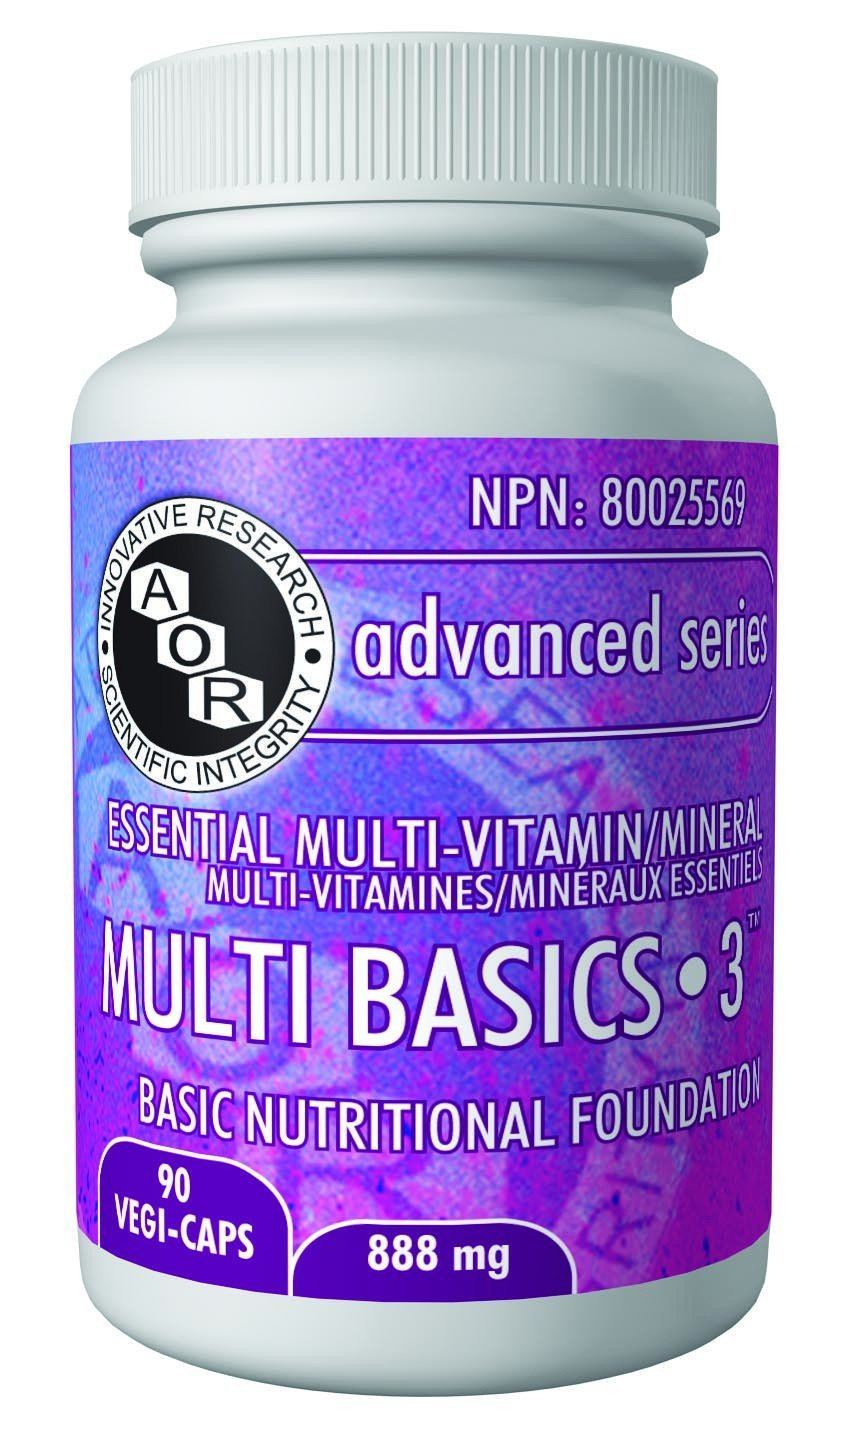 Supplements & Vitamins - AOR - Multi Basics-3, 90 Caps